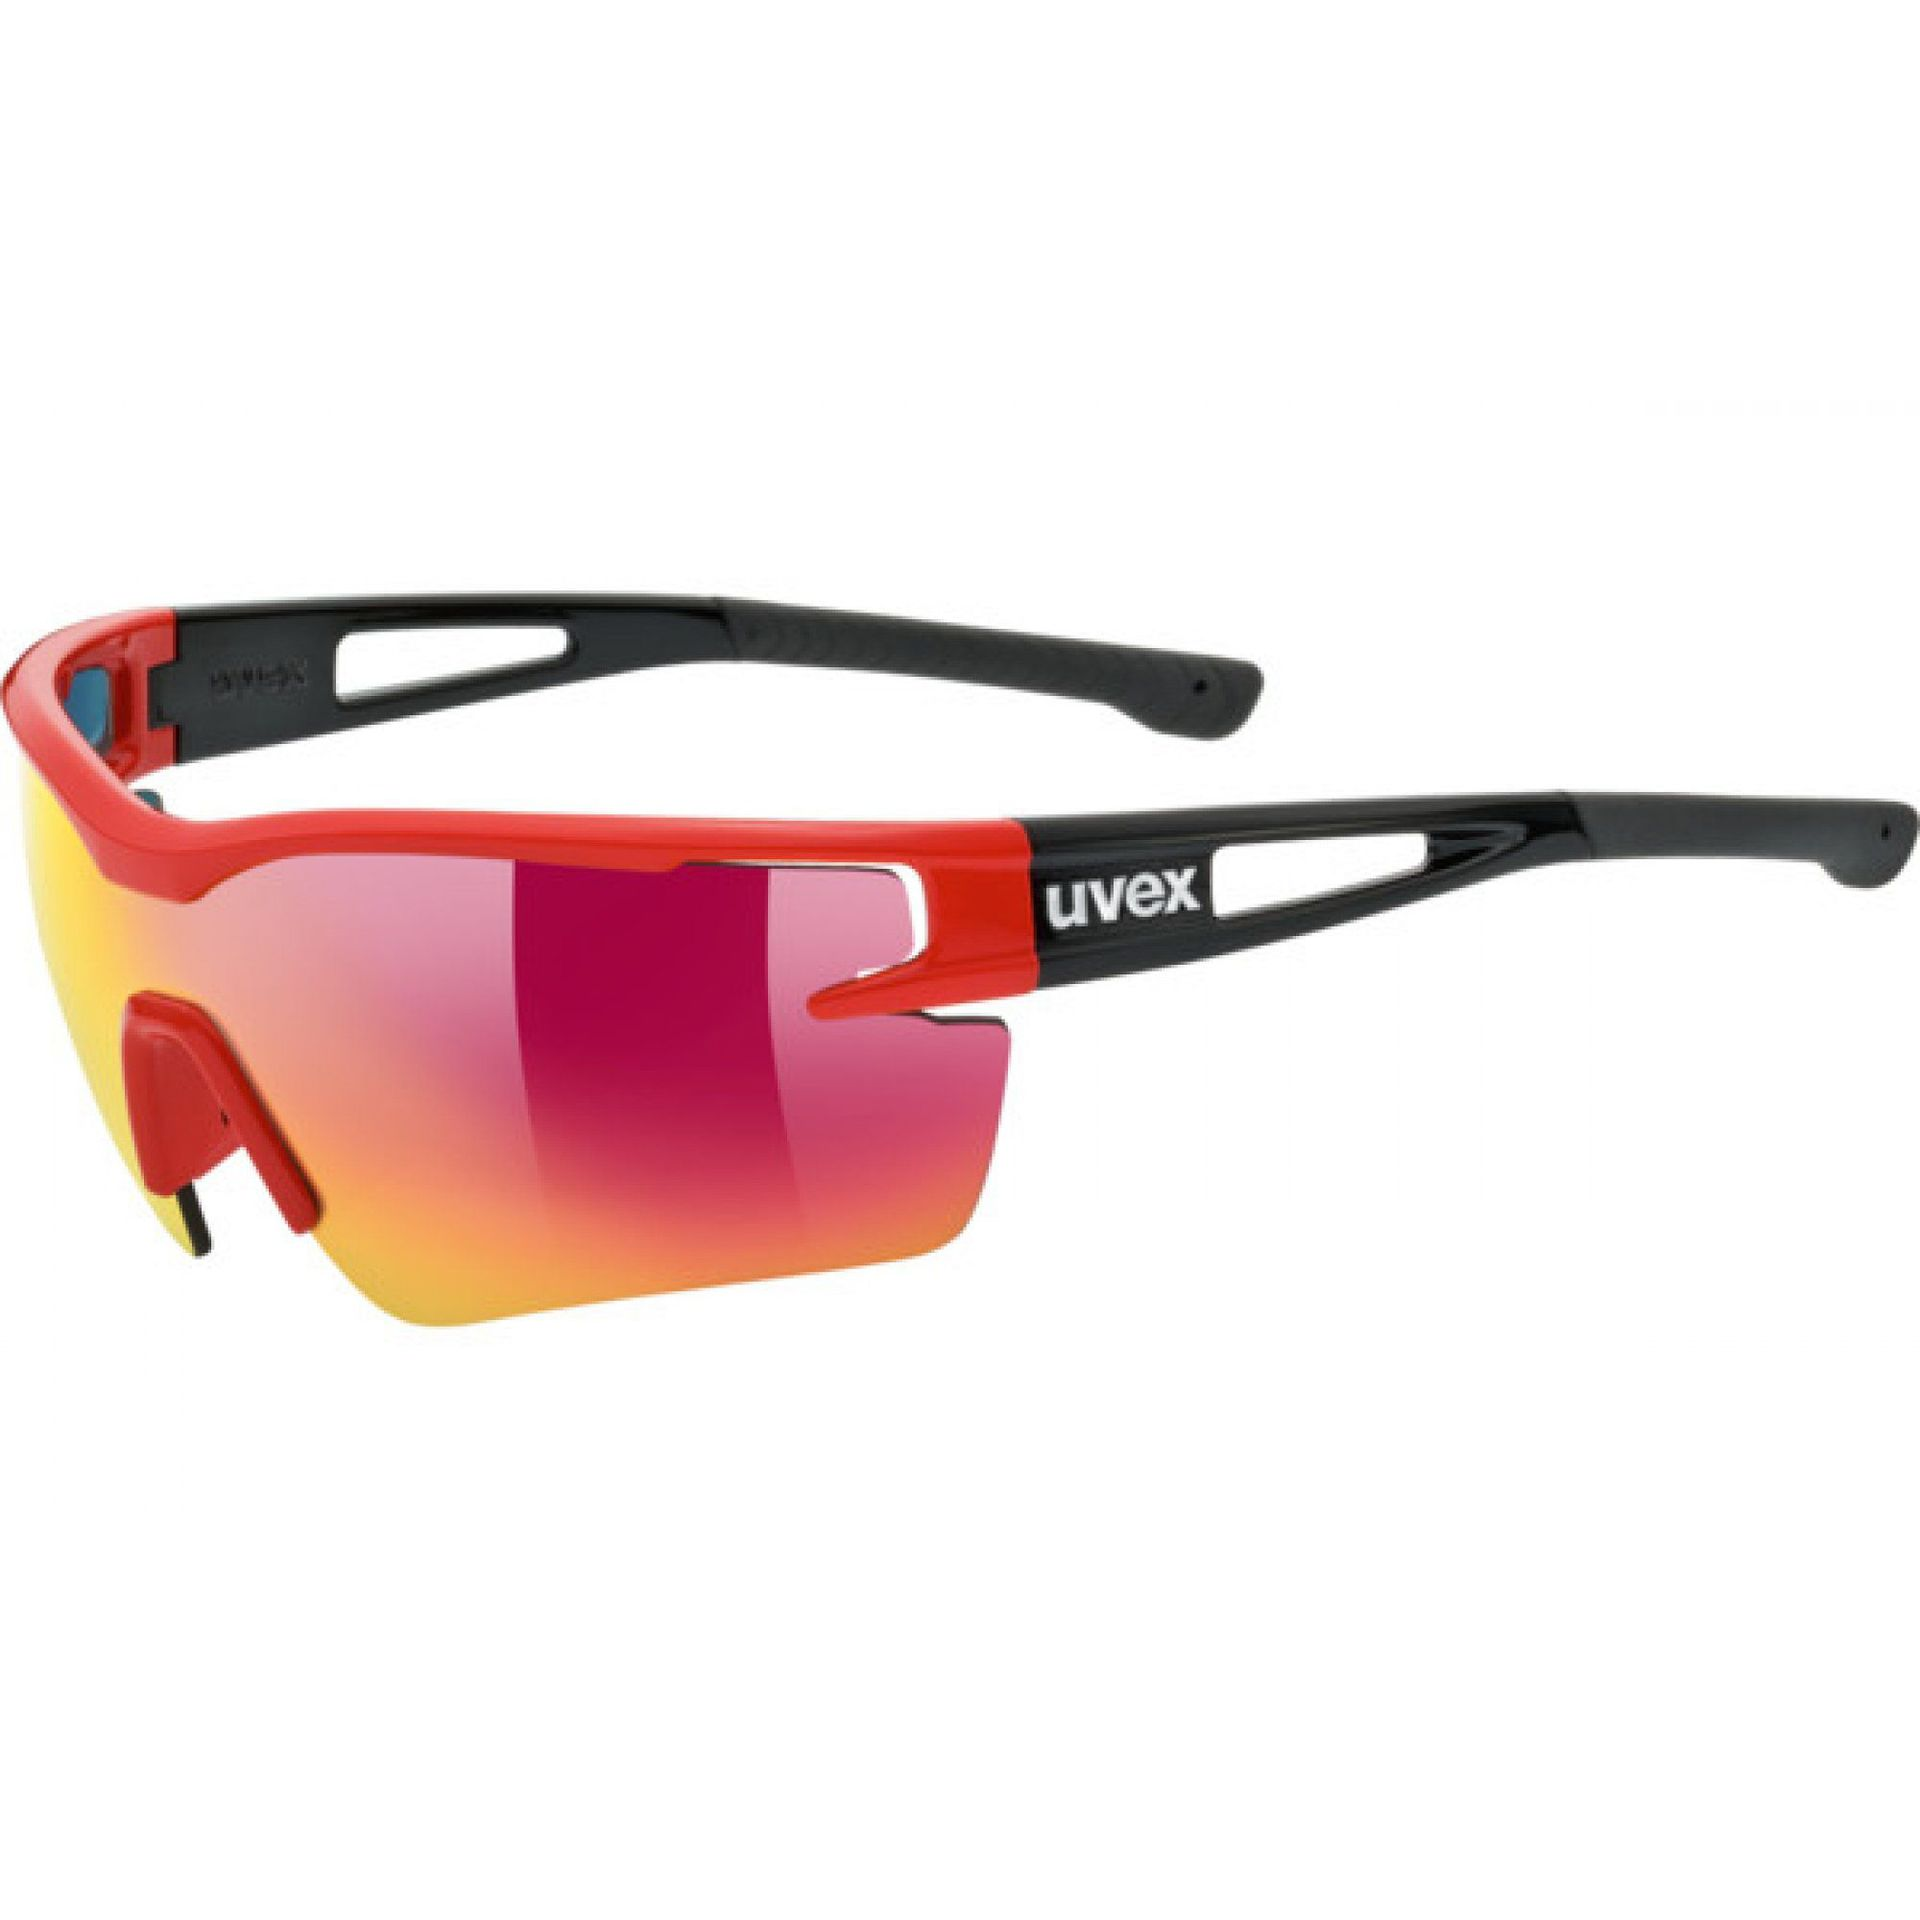 OKULARY UVEX SPORTSTYLE 116 977|3216 RED|BLACK MAT